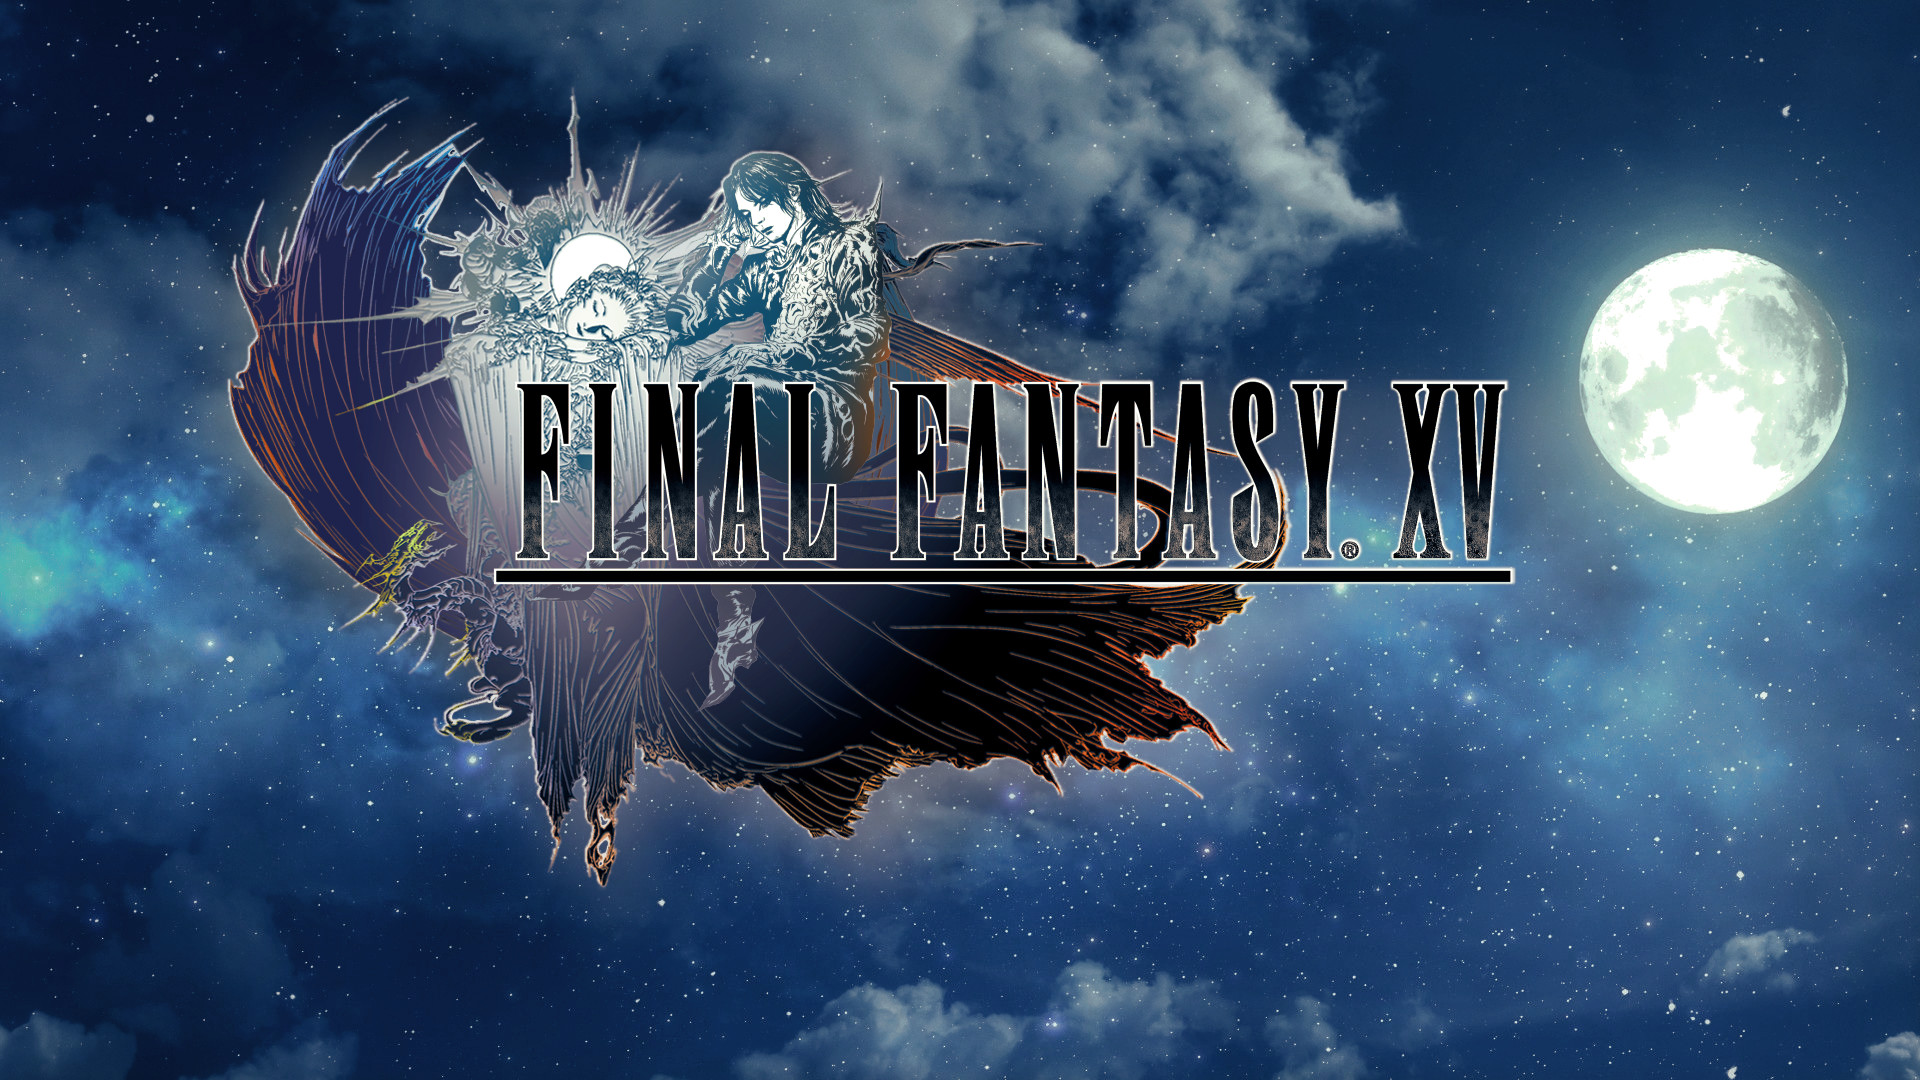 Ffxv wallpaper 76 images - 1366x768 is 720p or 1080p ...